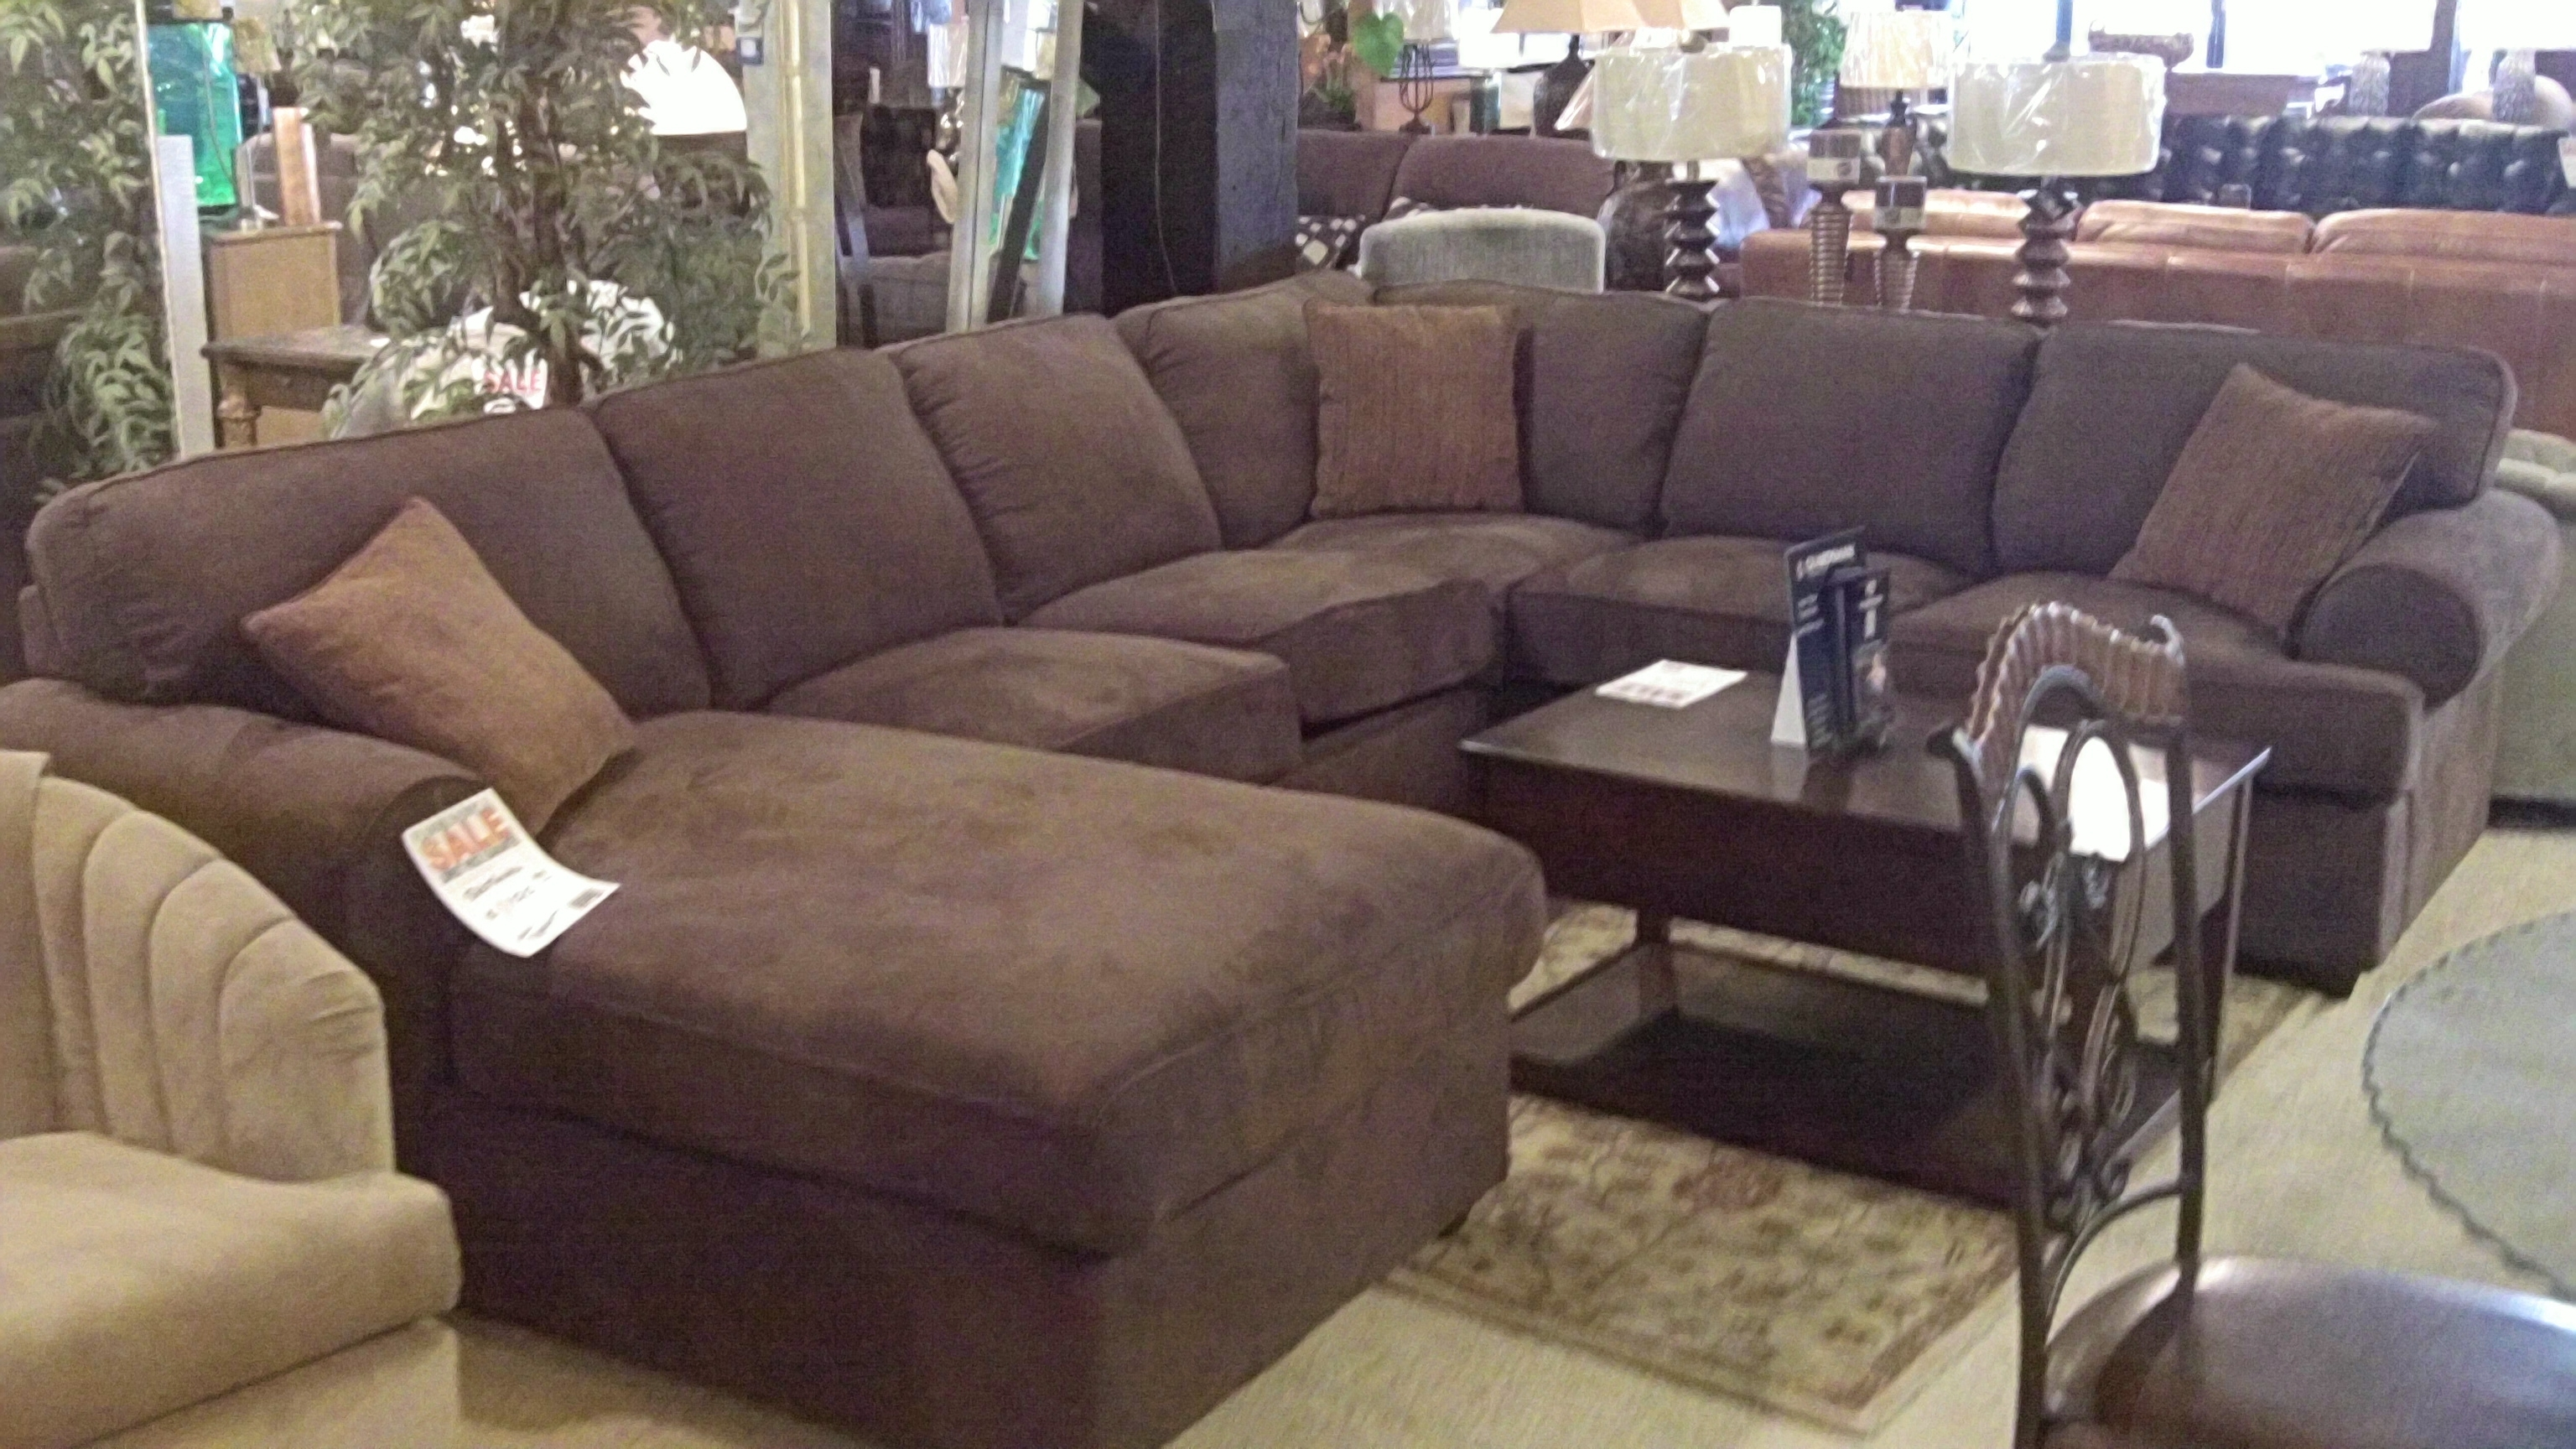 House : Excellent Large Sectional Sofa With Ottoman On Exquisite Within Oversized Sectional Sofas (View 6 of 10)